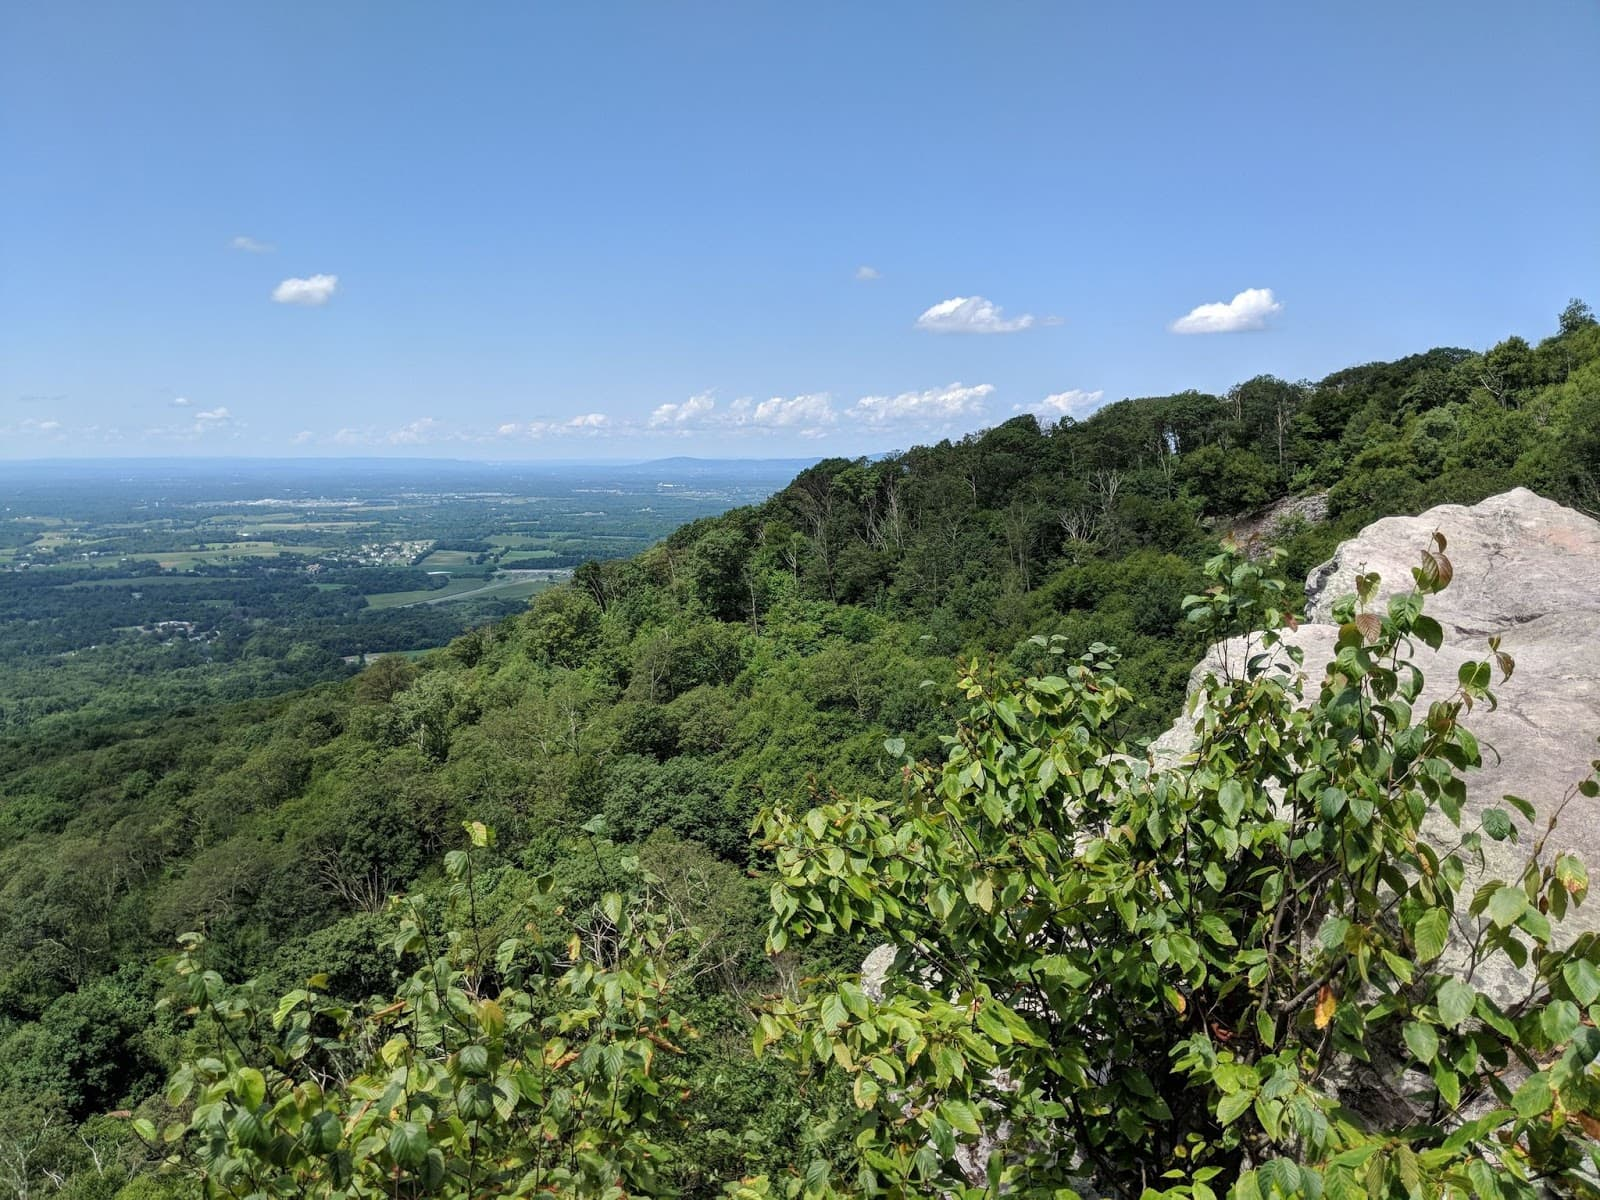 Annapolis Rock // Looking for the best hikes in Maryland? Here are our 7 favorite Maryland trails including distances, descriptions, and local tips.